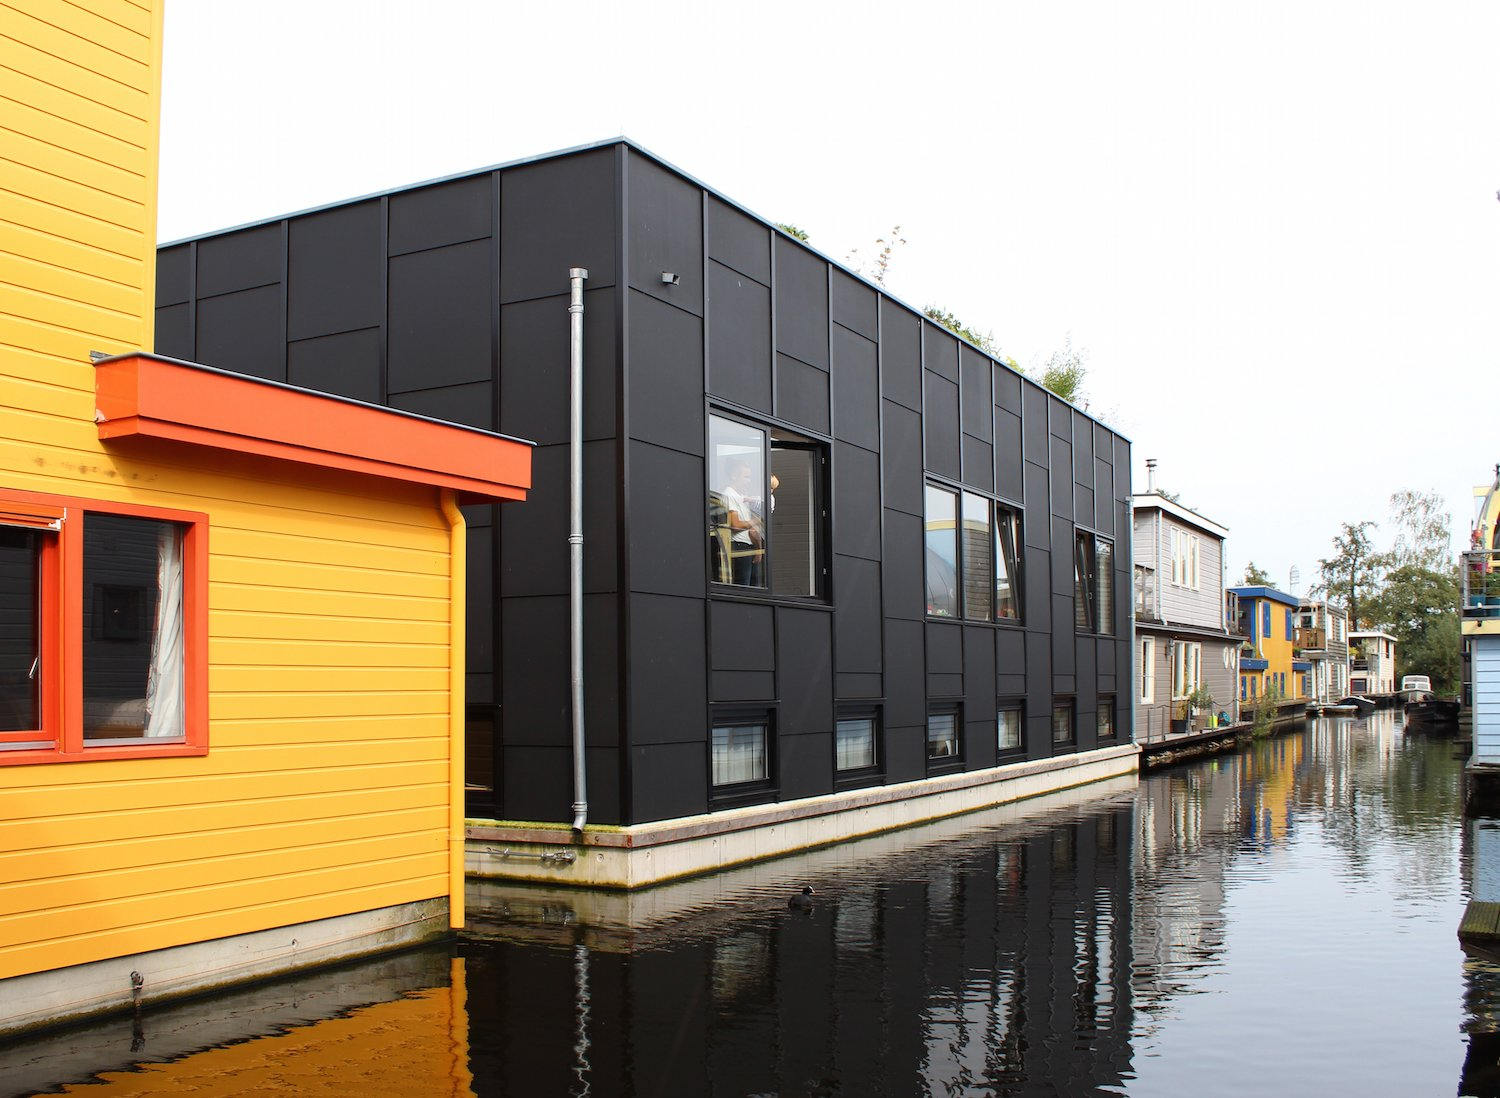 The Tatami House is located in a floating community in the south of Amsterdam near the Olympic Stadium.